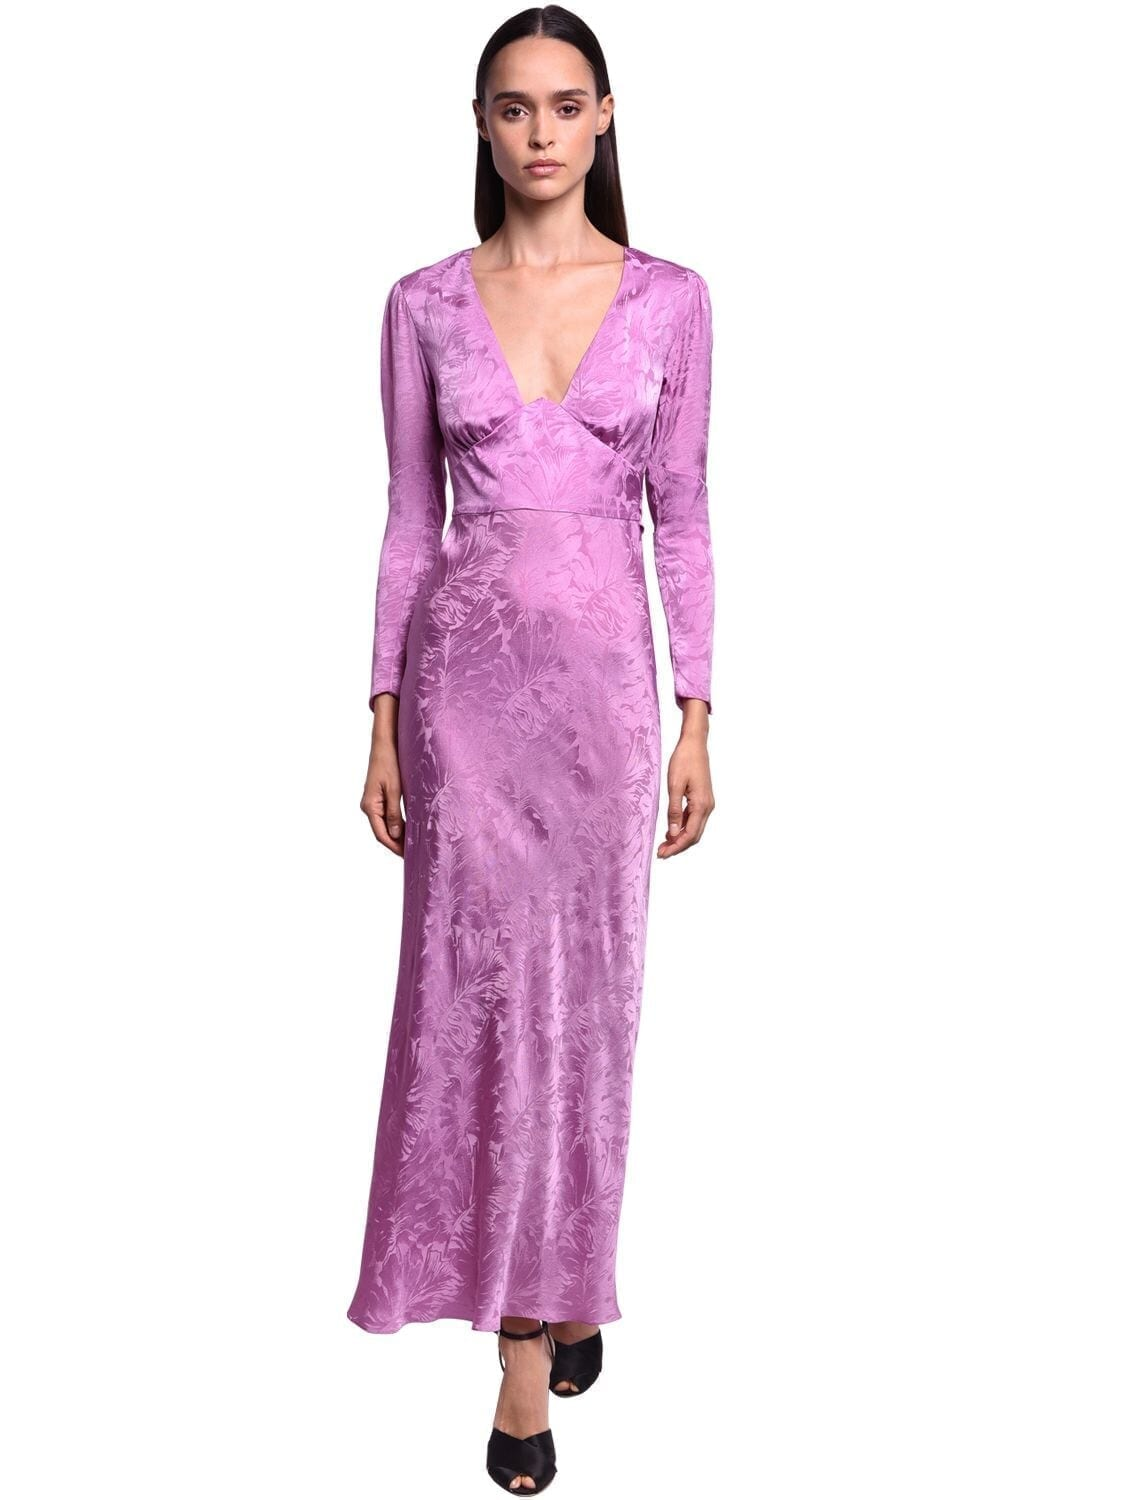 NERVI Satin Jacquard Long Dress